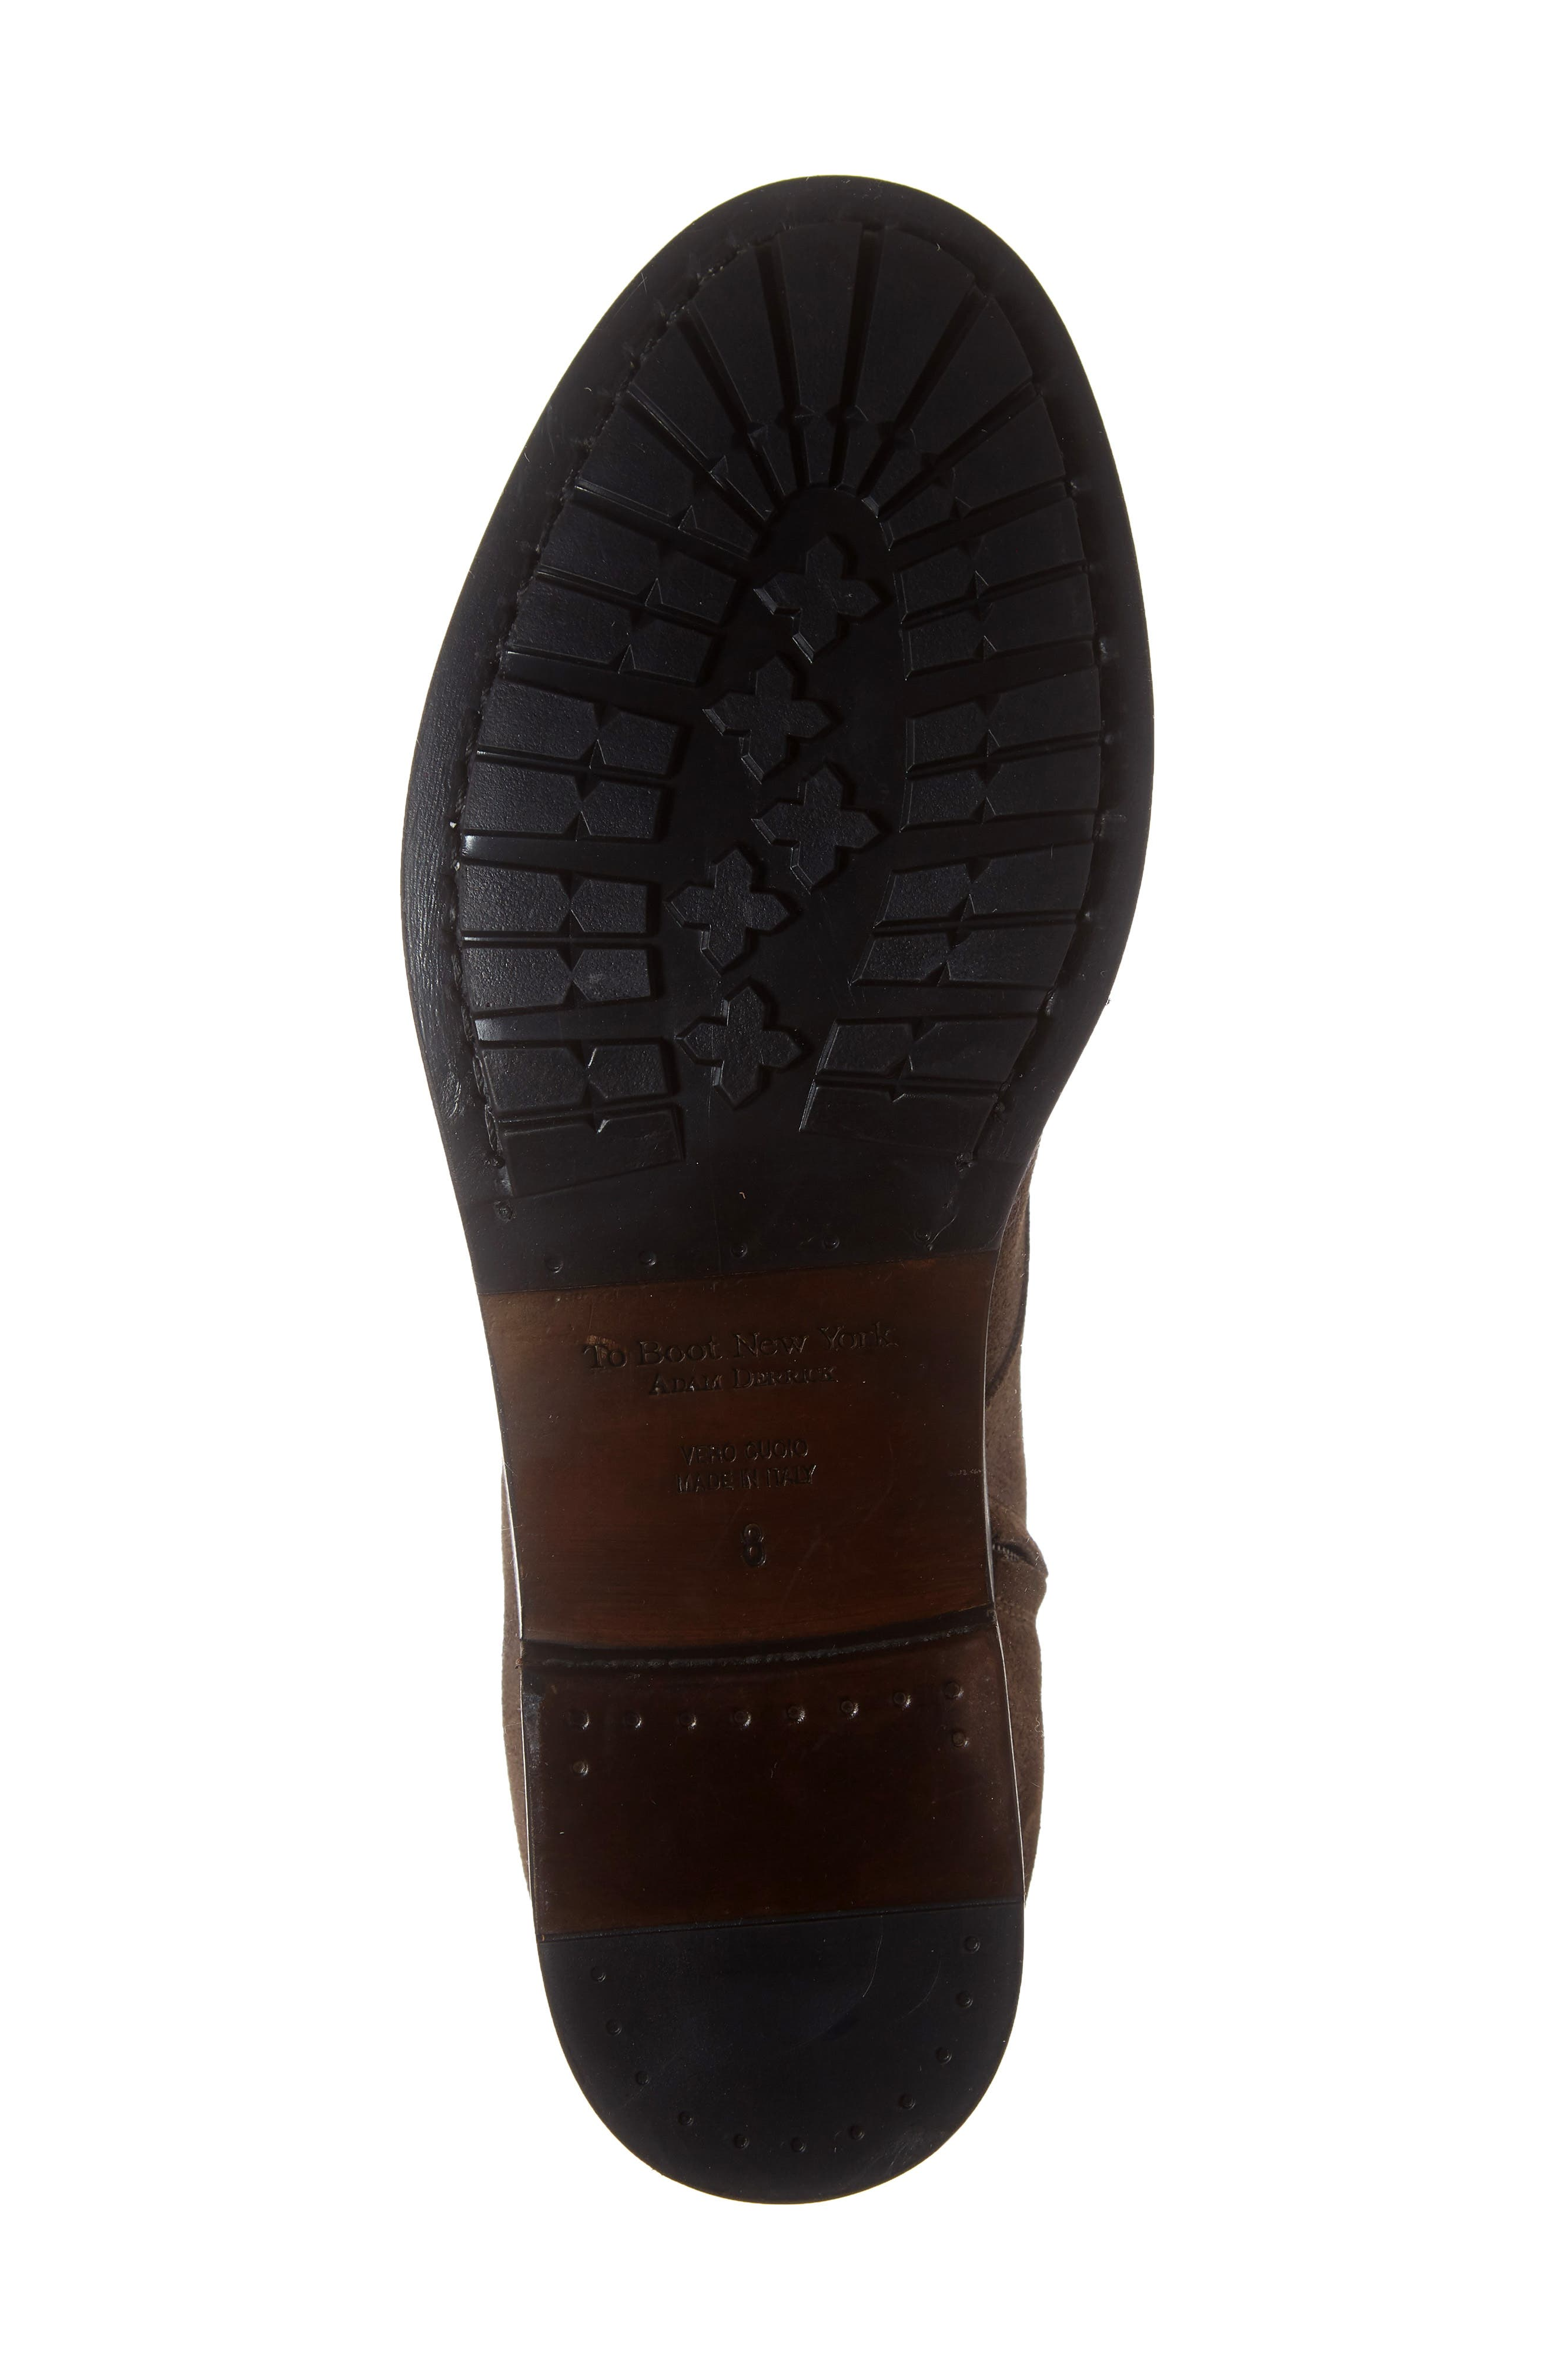 Athens Plain Toe Boot,                             Alternate thumbnail 6, color,                             TMORO SUEDE/ LEATHER